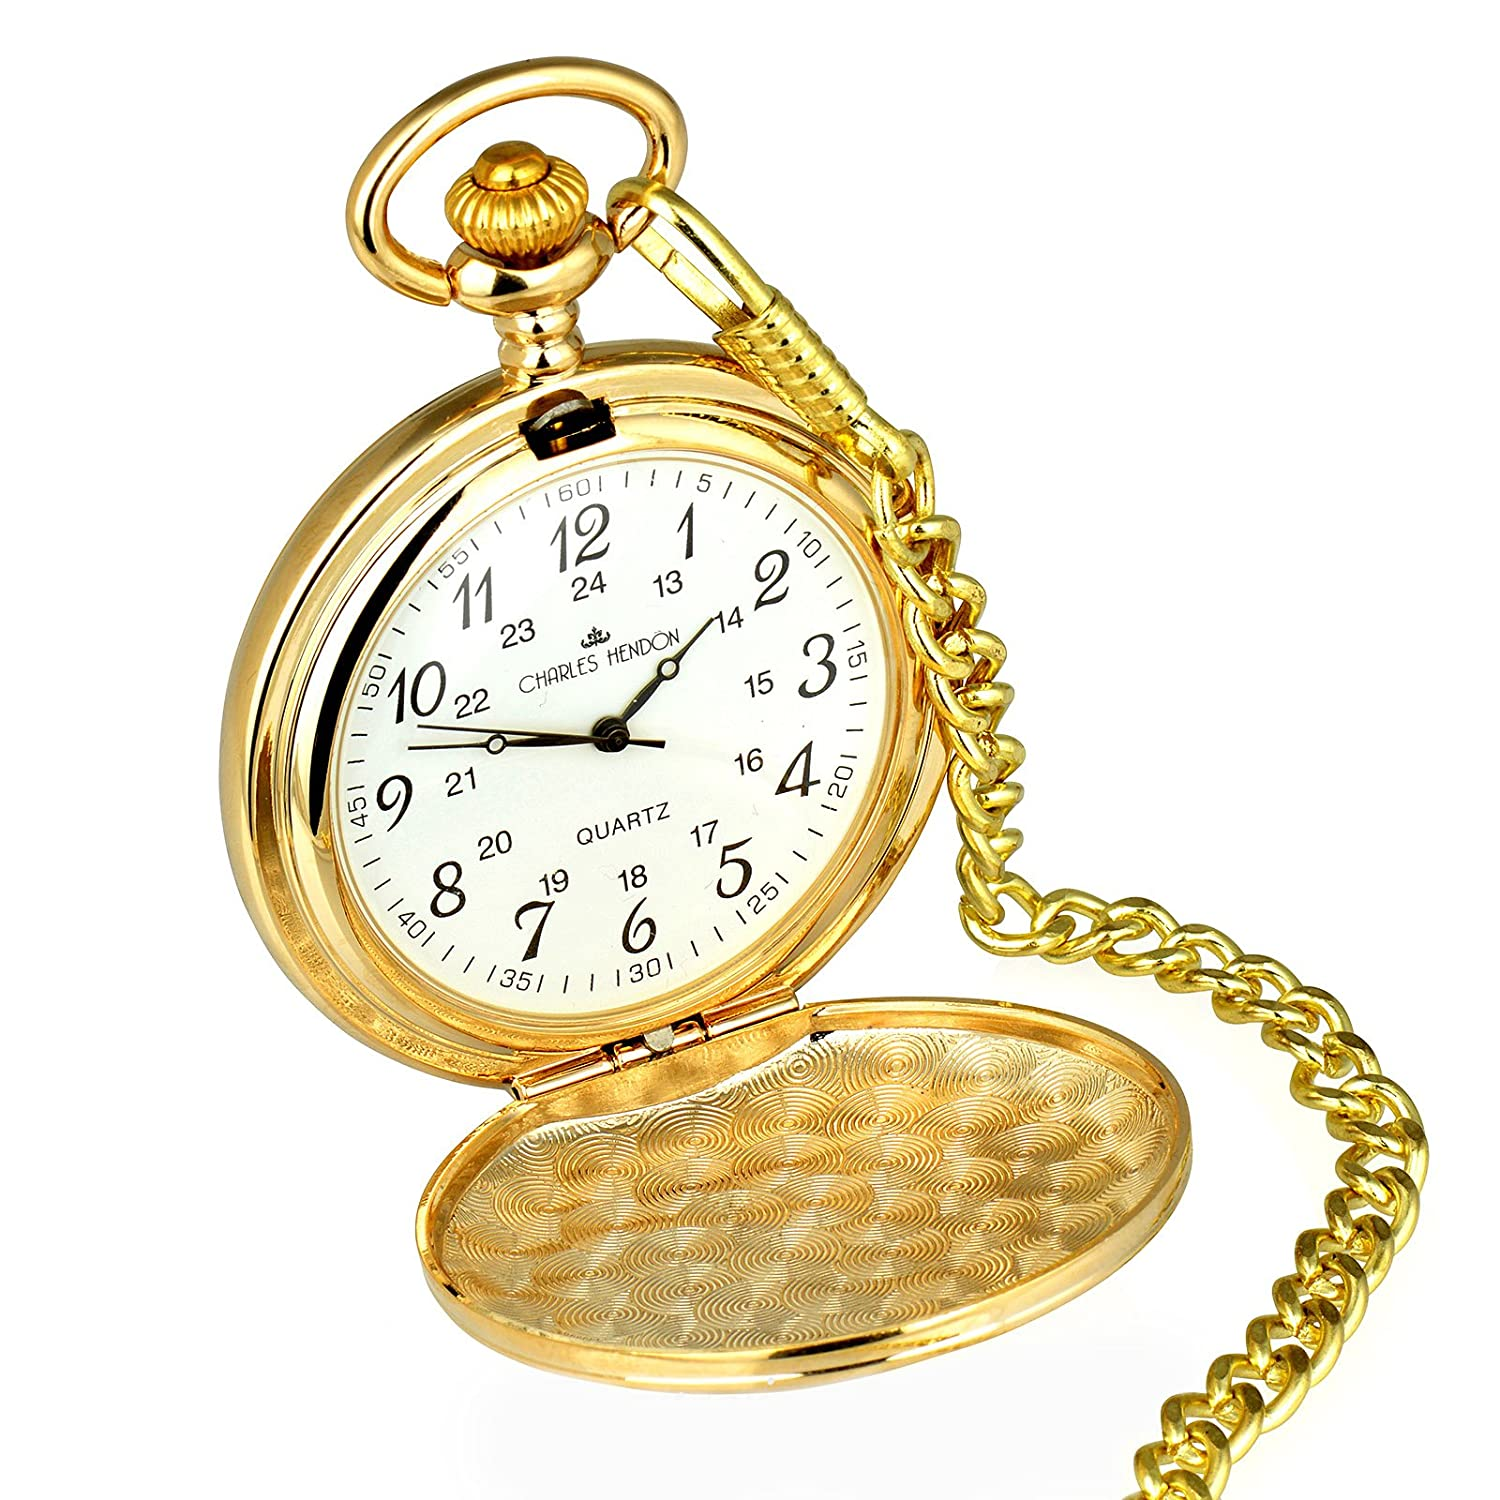 Mens pocket watches with chain images mens gold pocket watches gifts - Personalised Engraved Gold Pocket Watch In A Velveteen Pouch Ideal Men S Gift Free Engraving Amazon Co Uk Jewellery